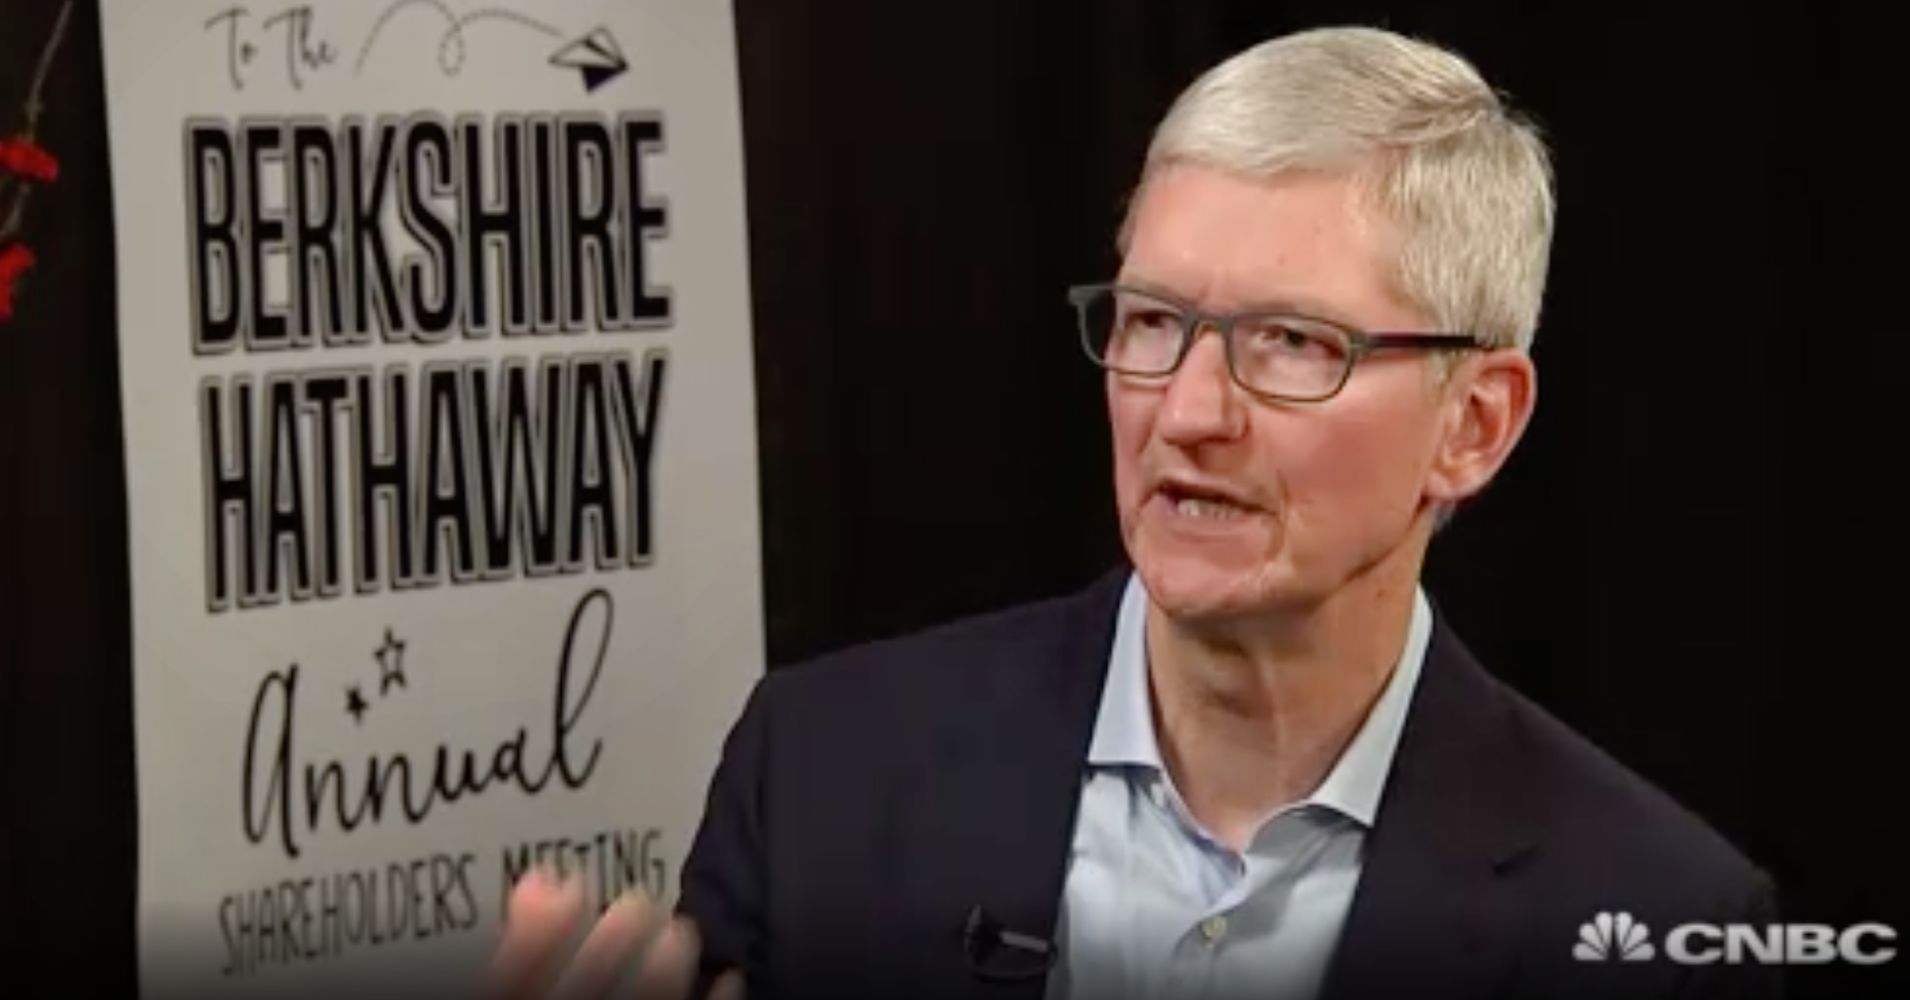 Apple CEO Tim Cook interview from Berkshire Hathaway meeting